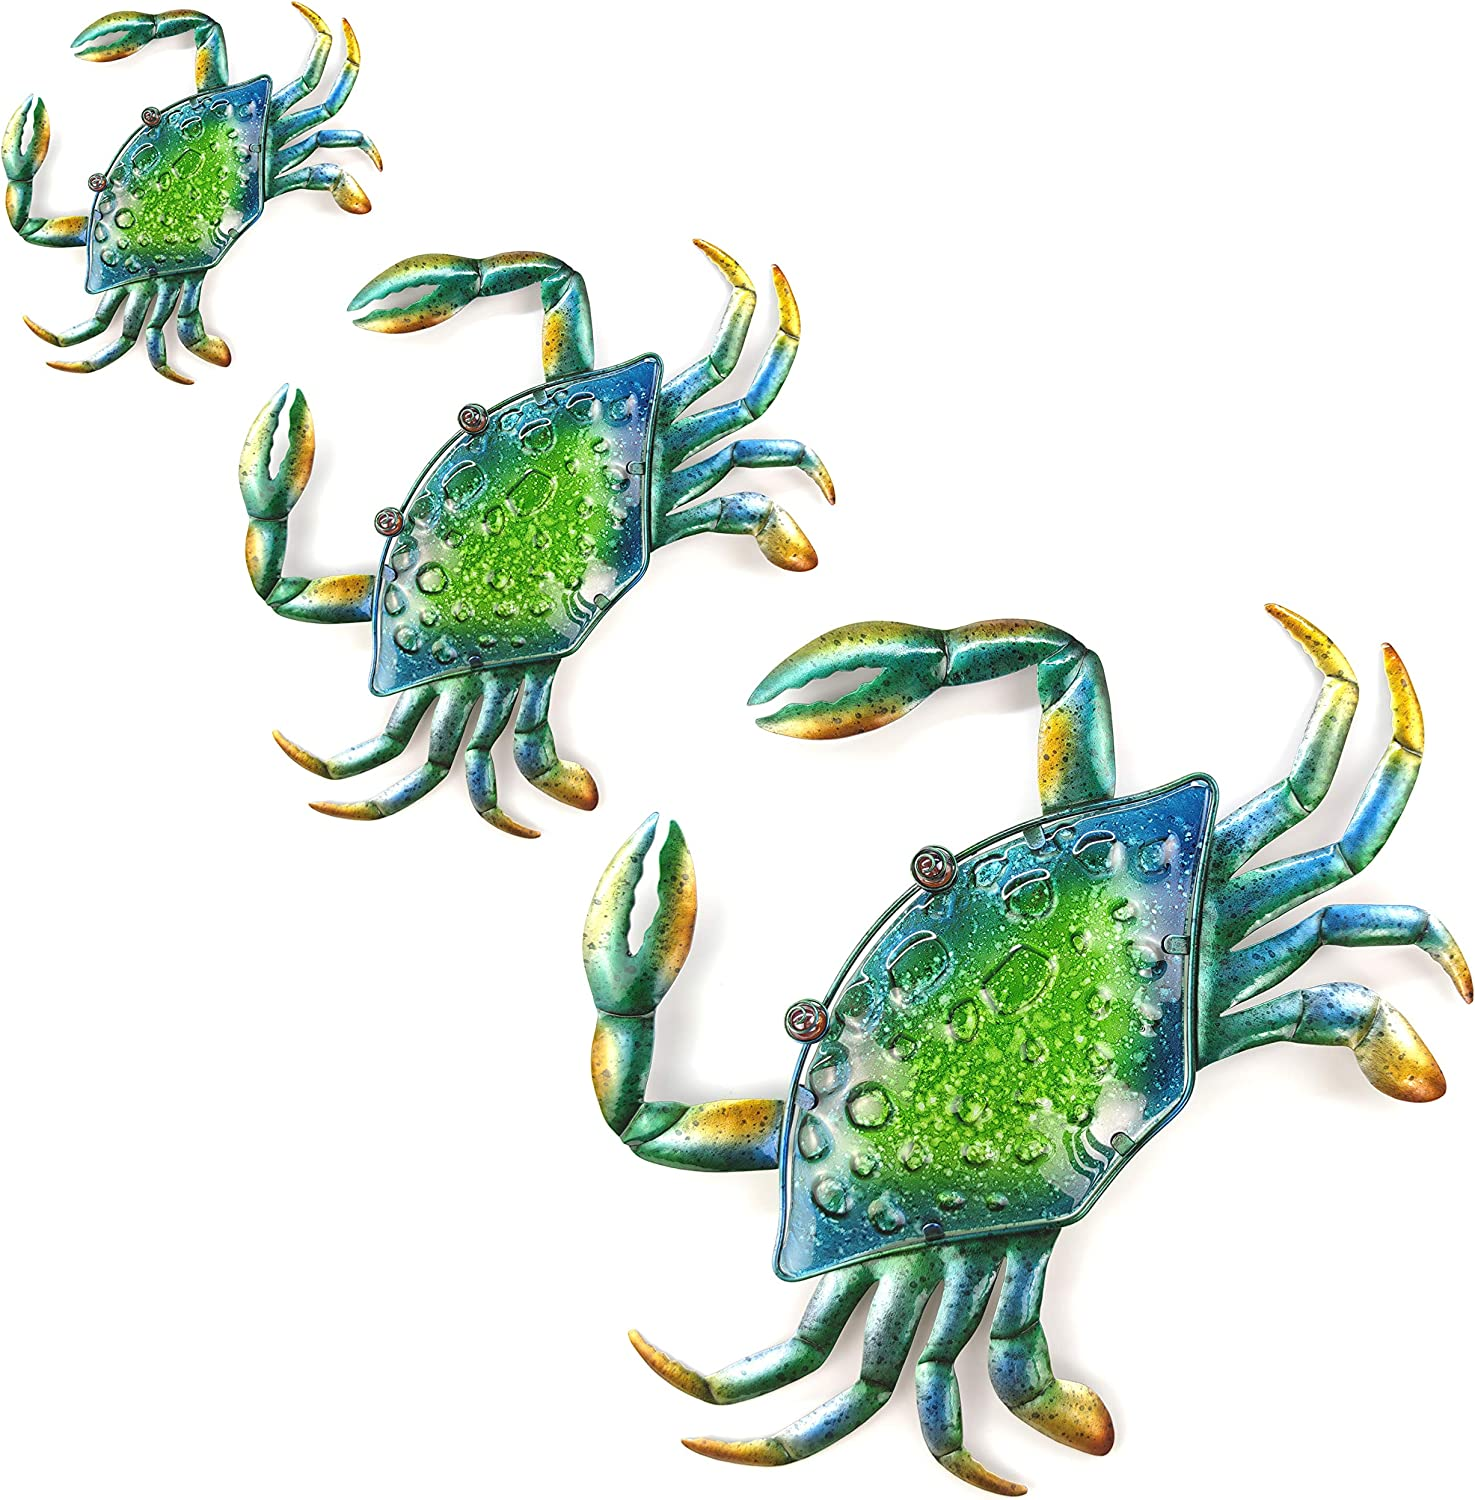 JOYBee 3Pcs 18inch 13inch 9inch Large Coastal Ocean Metal Crab Wall Art Decor Family Set ,Decoration for outdoor indoor bathroom kitchen garden bedroom patio